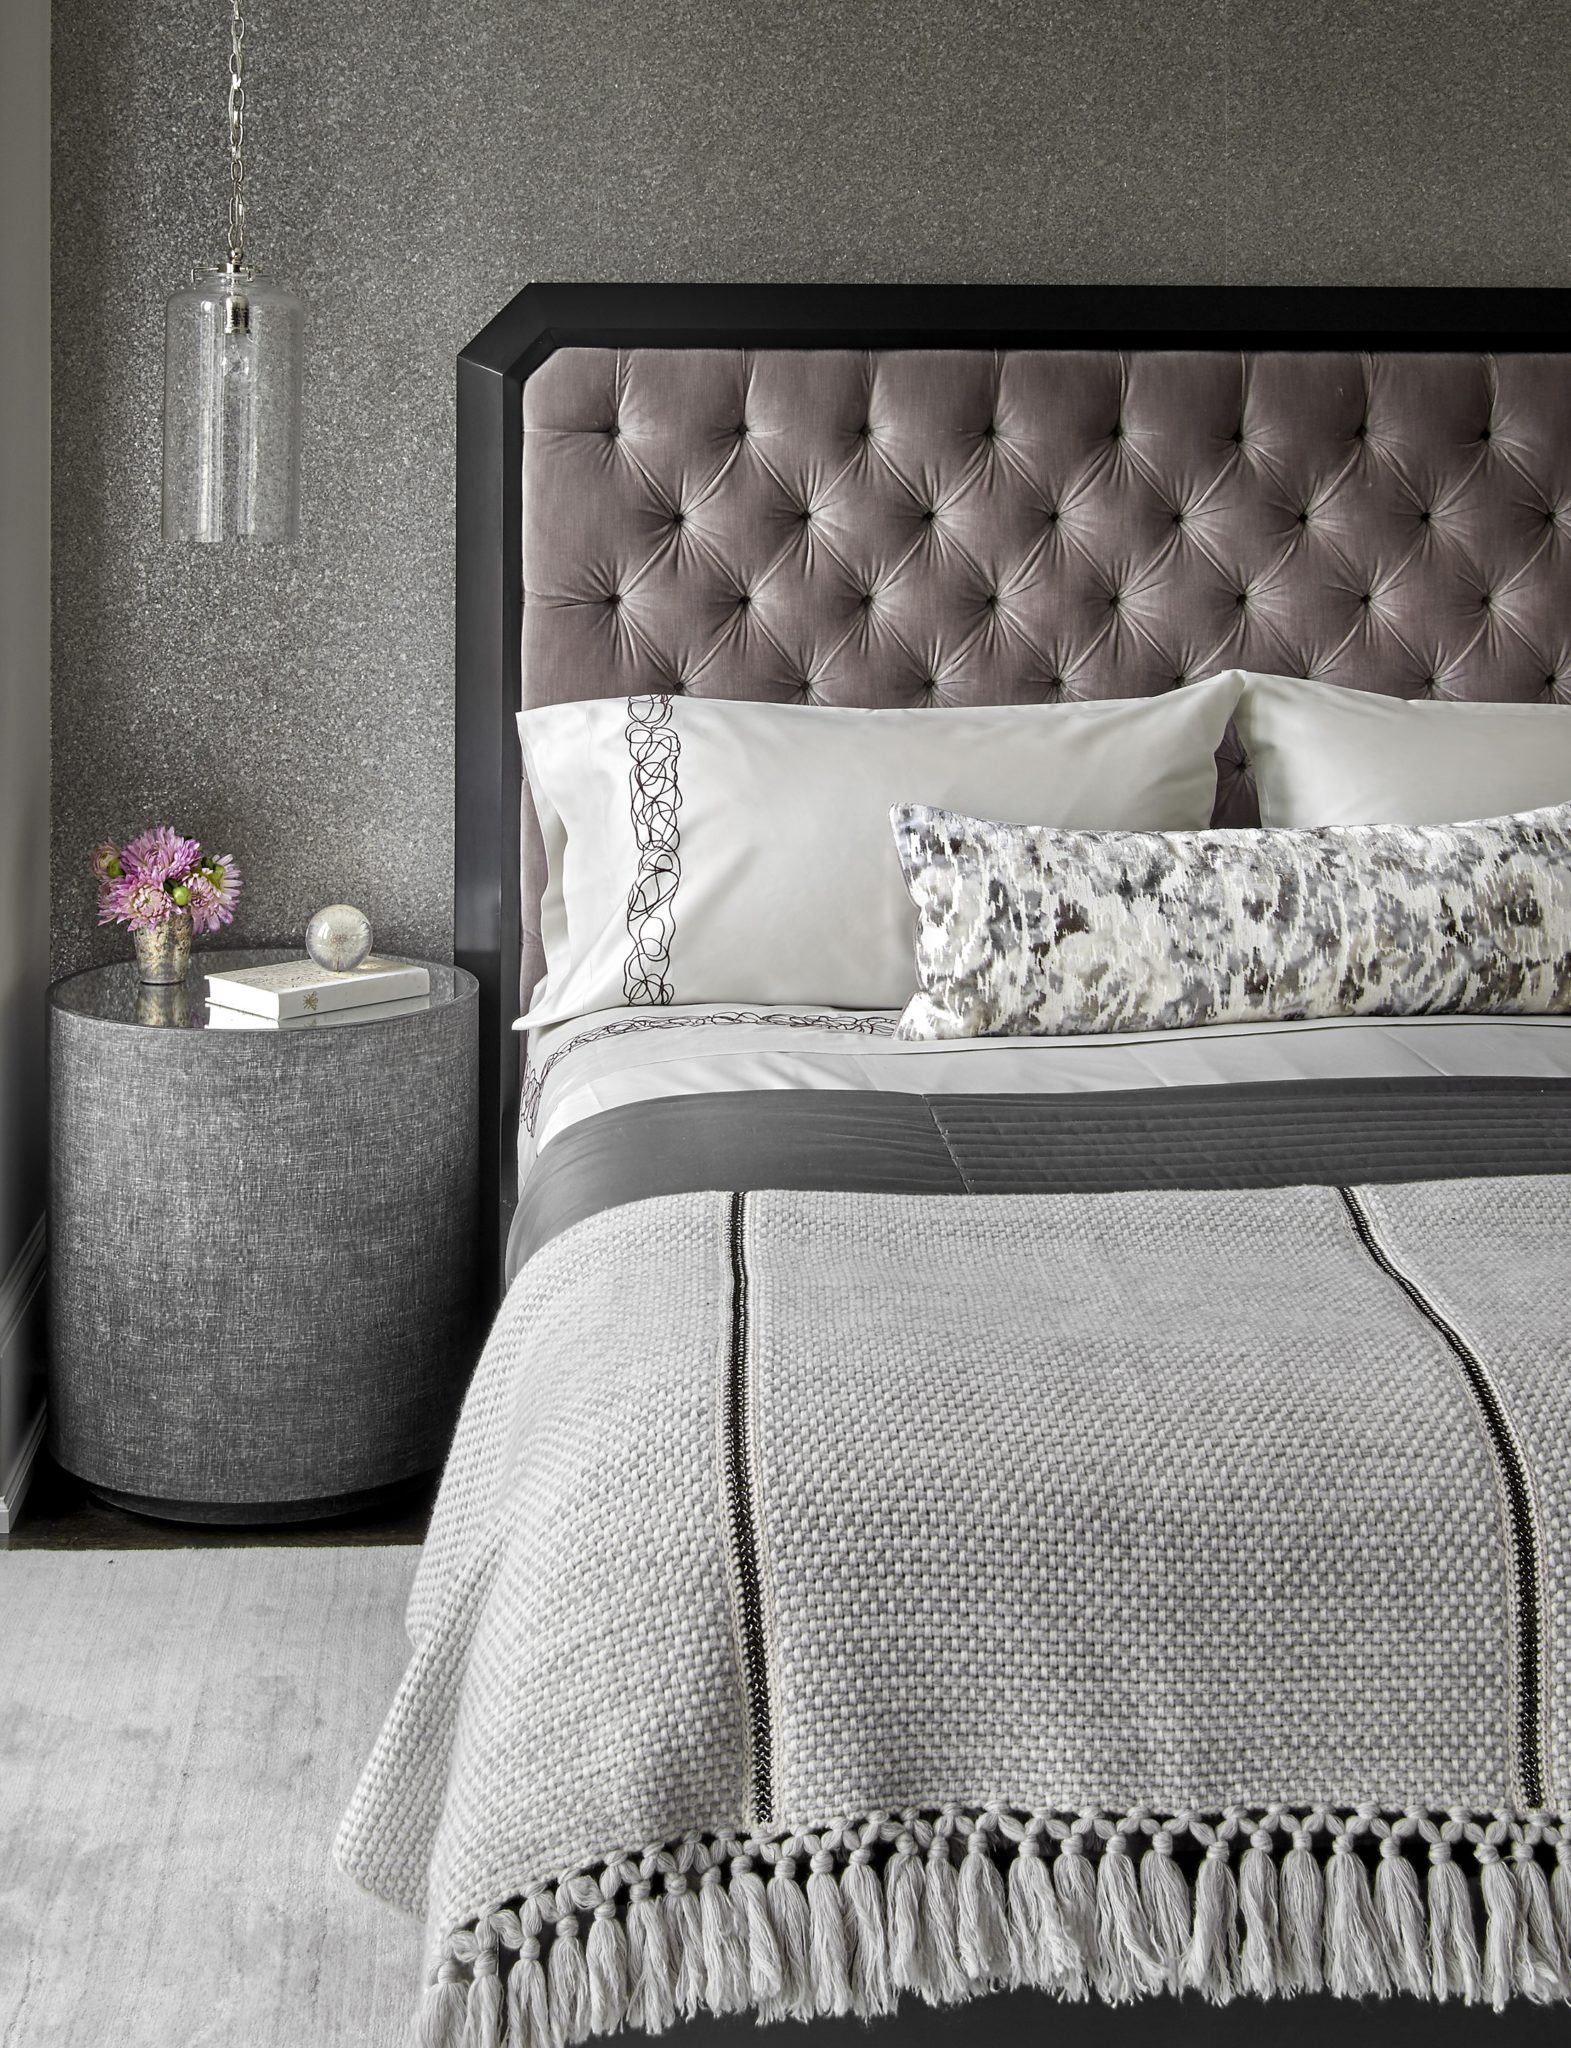 50 Shades of Grey | Velvet Tufted Headboard, Custom Bedding & Hanging Pendants by Laurie Demetrio Interiors